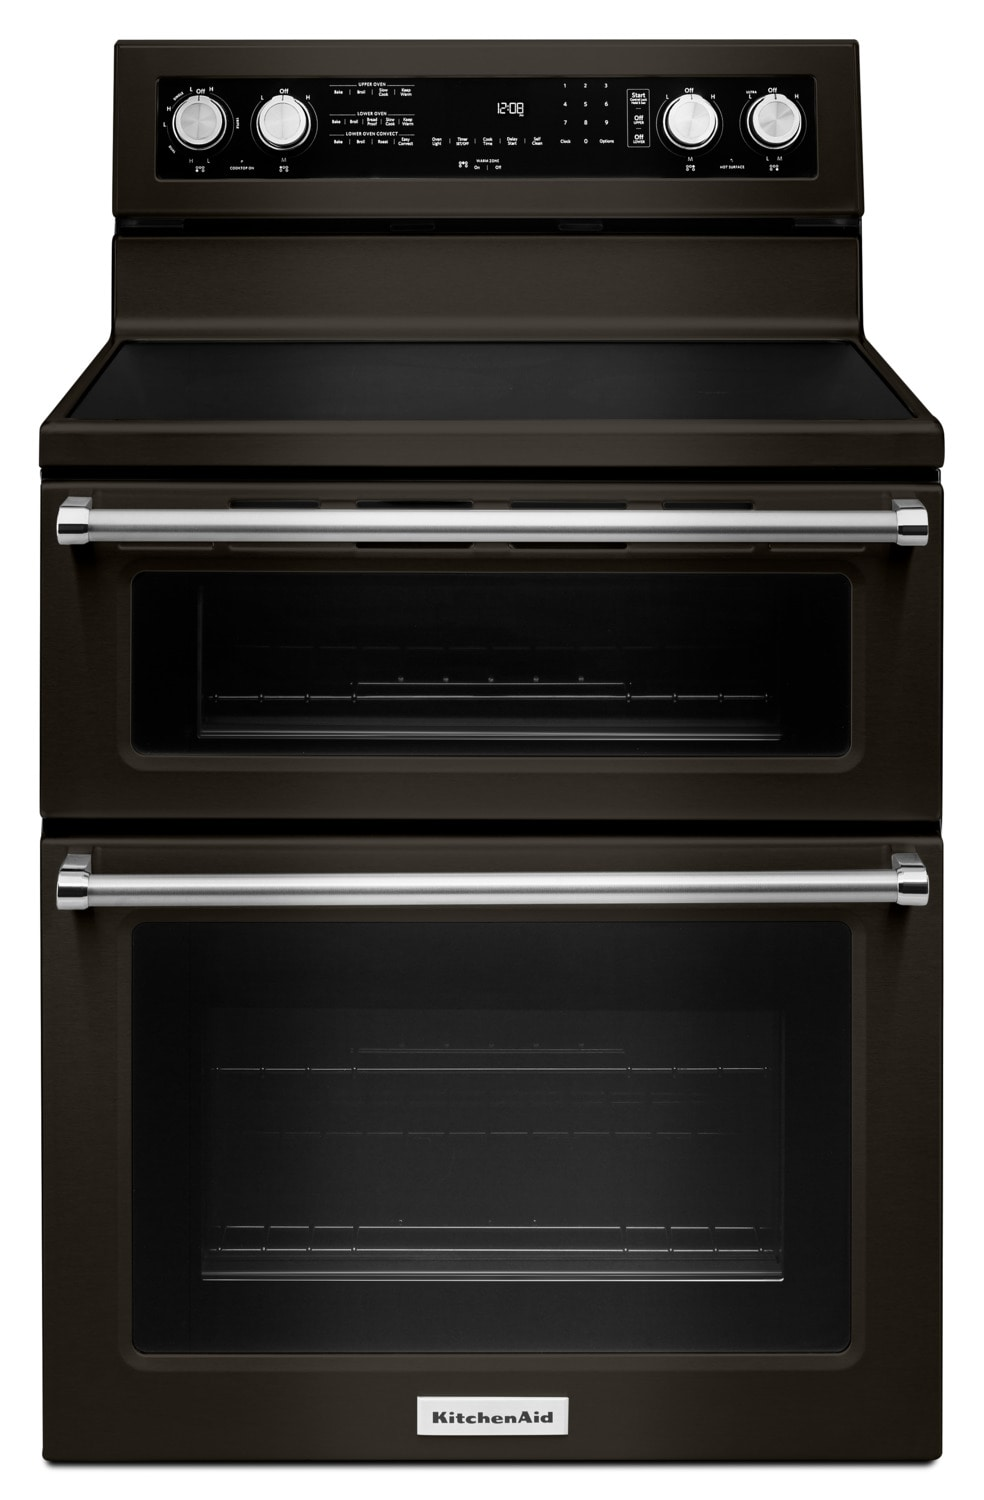 KitchenAid Black Stainless Steel Freestanding Electric Double Oven Range (6.7 Cu. Ft.) - YKFED500EBS